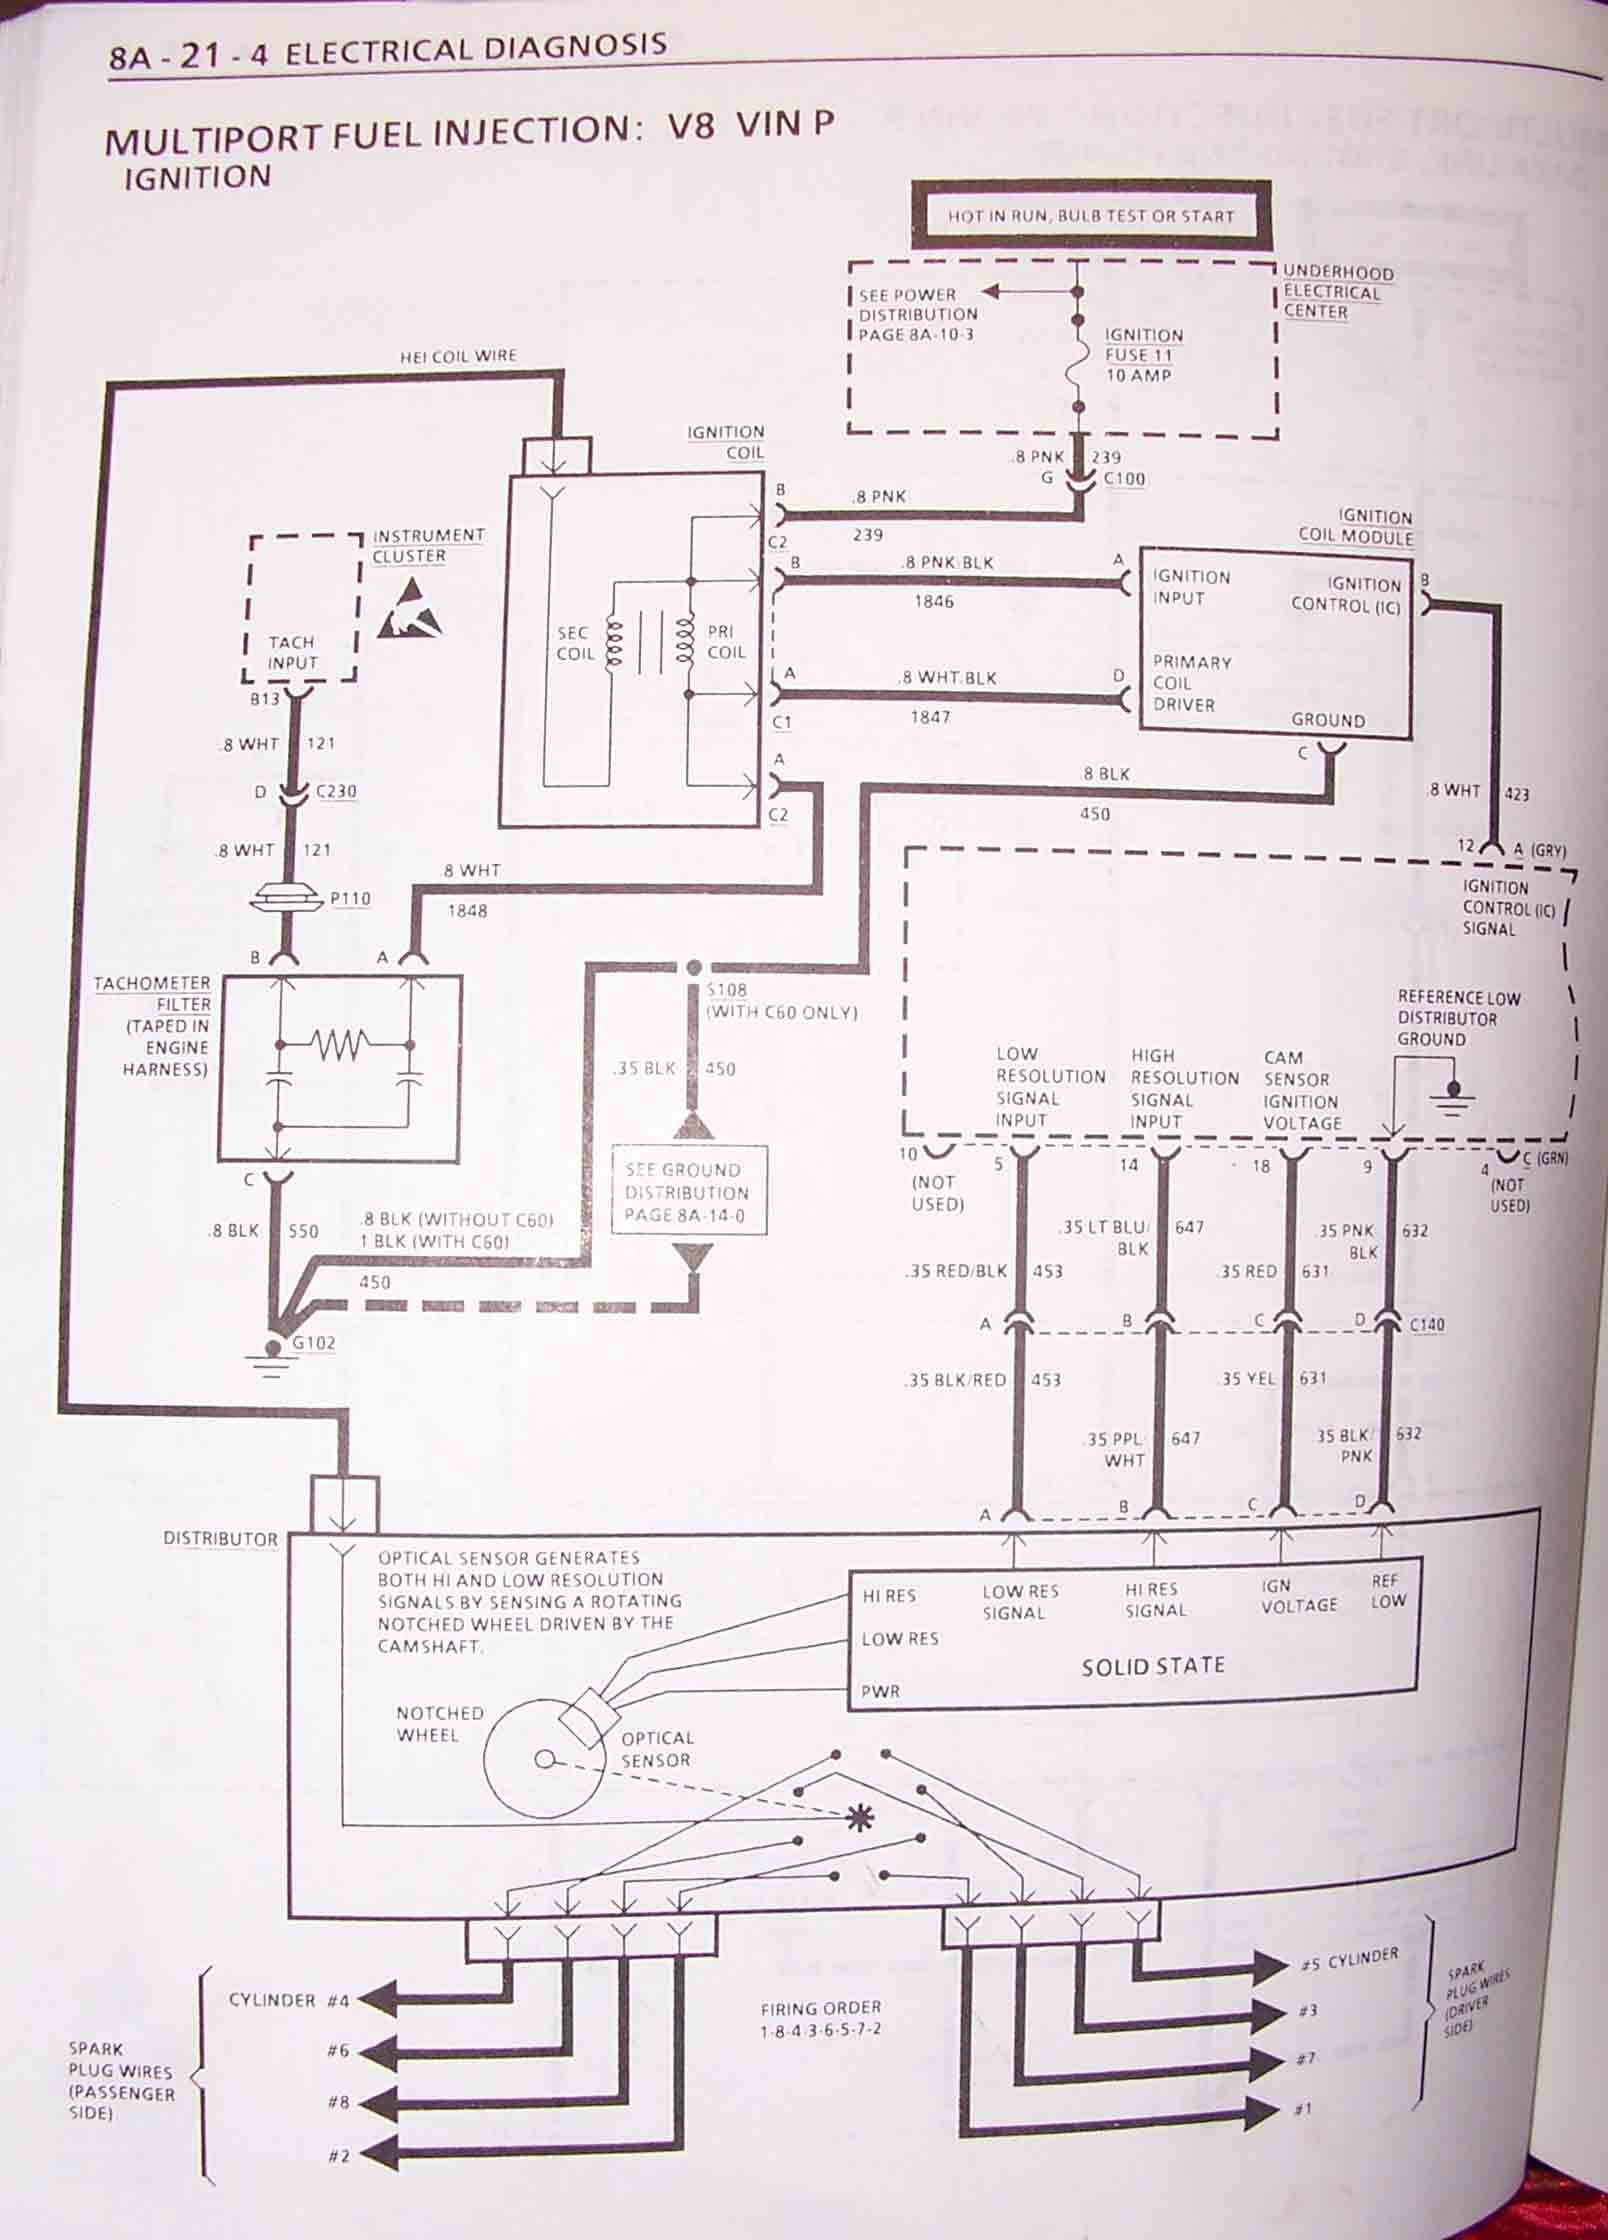 Pleasant 94 Trans Am Wiring Diagram Wiring Library Wiring Cloud Hemtshollocom